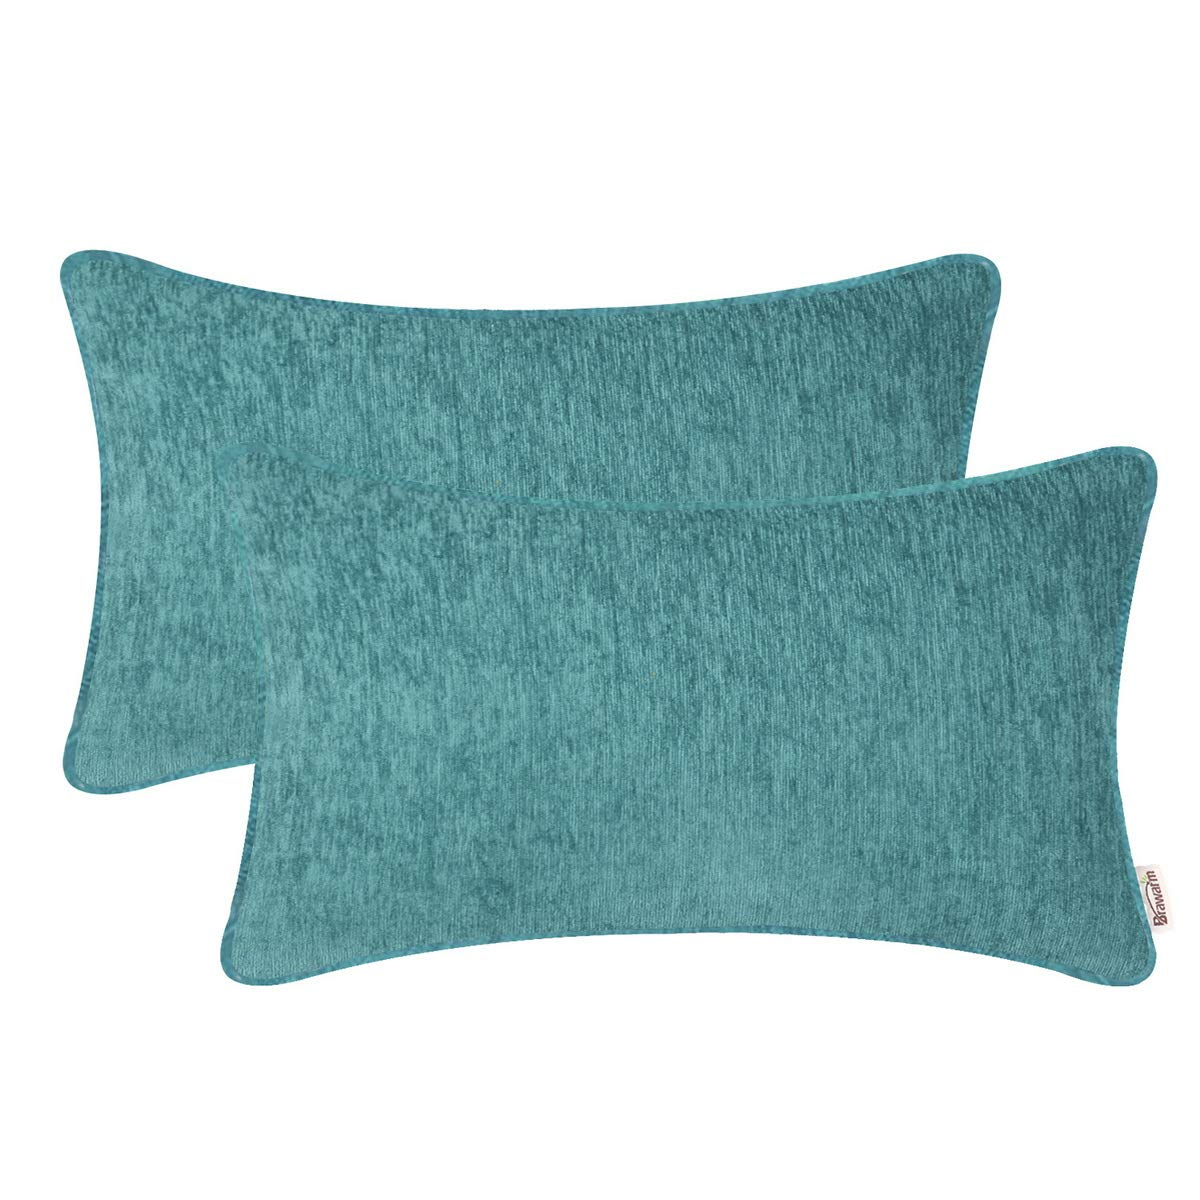 BRAWARM Pack of 2 Cozy Bolster Pillow Covers Cases for Sofa Couch Home Decoration Solid Dyed Striped Soft Chenille with Piping 12 X 20 Inches Teal